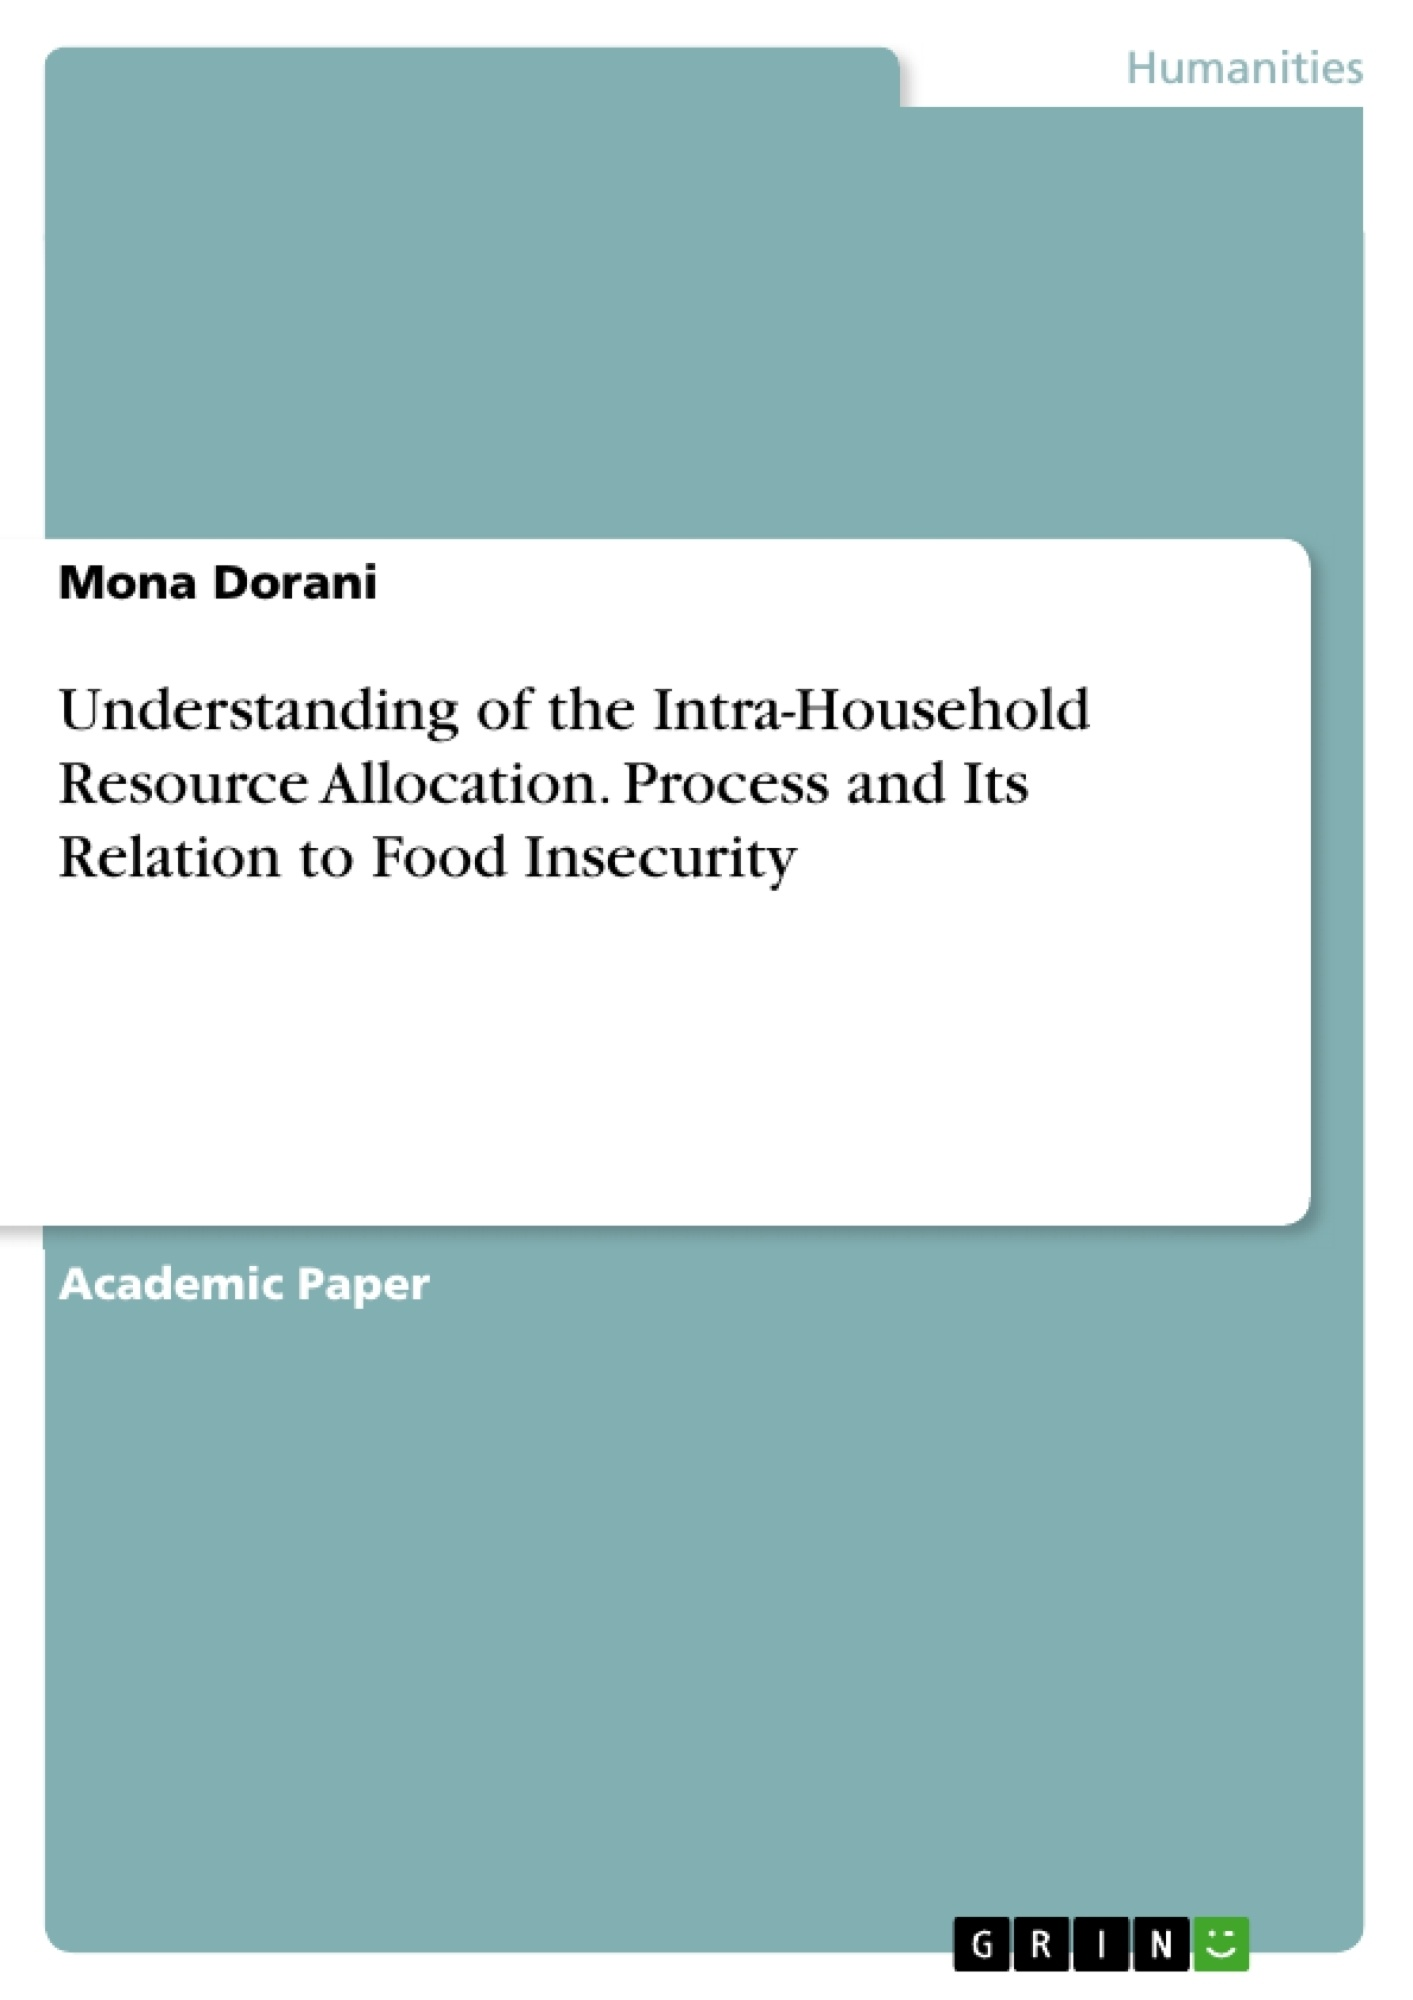 Title: Understanding of the Intra-Household Resource Allocation. Process and Its Relation to Food Insecurity